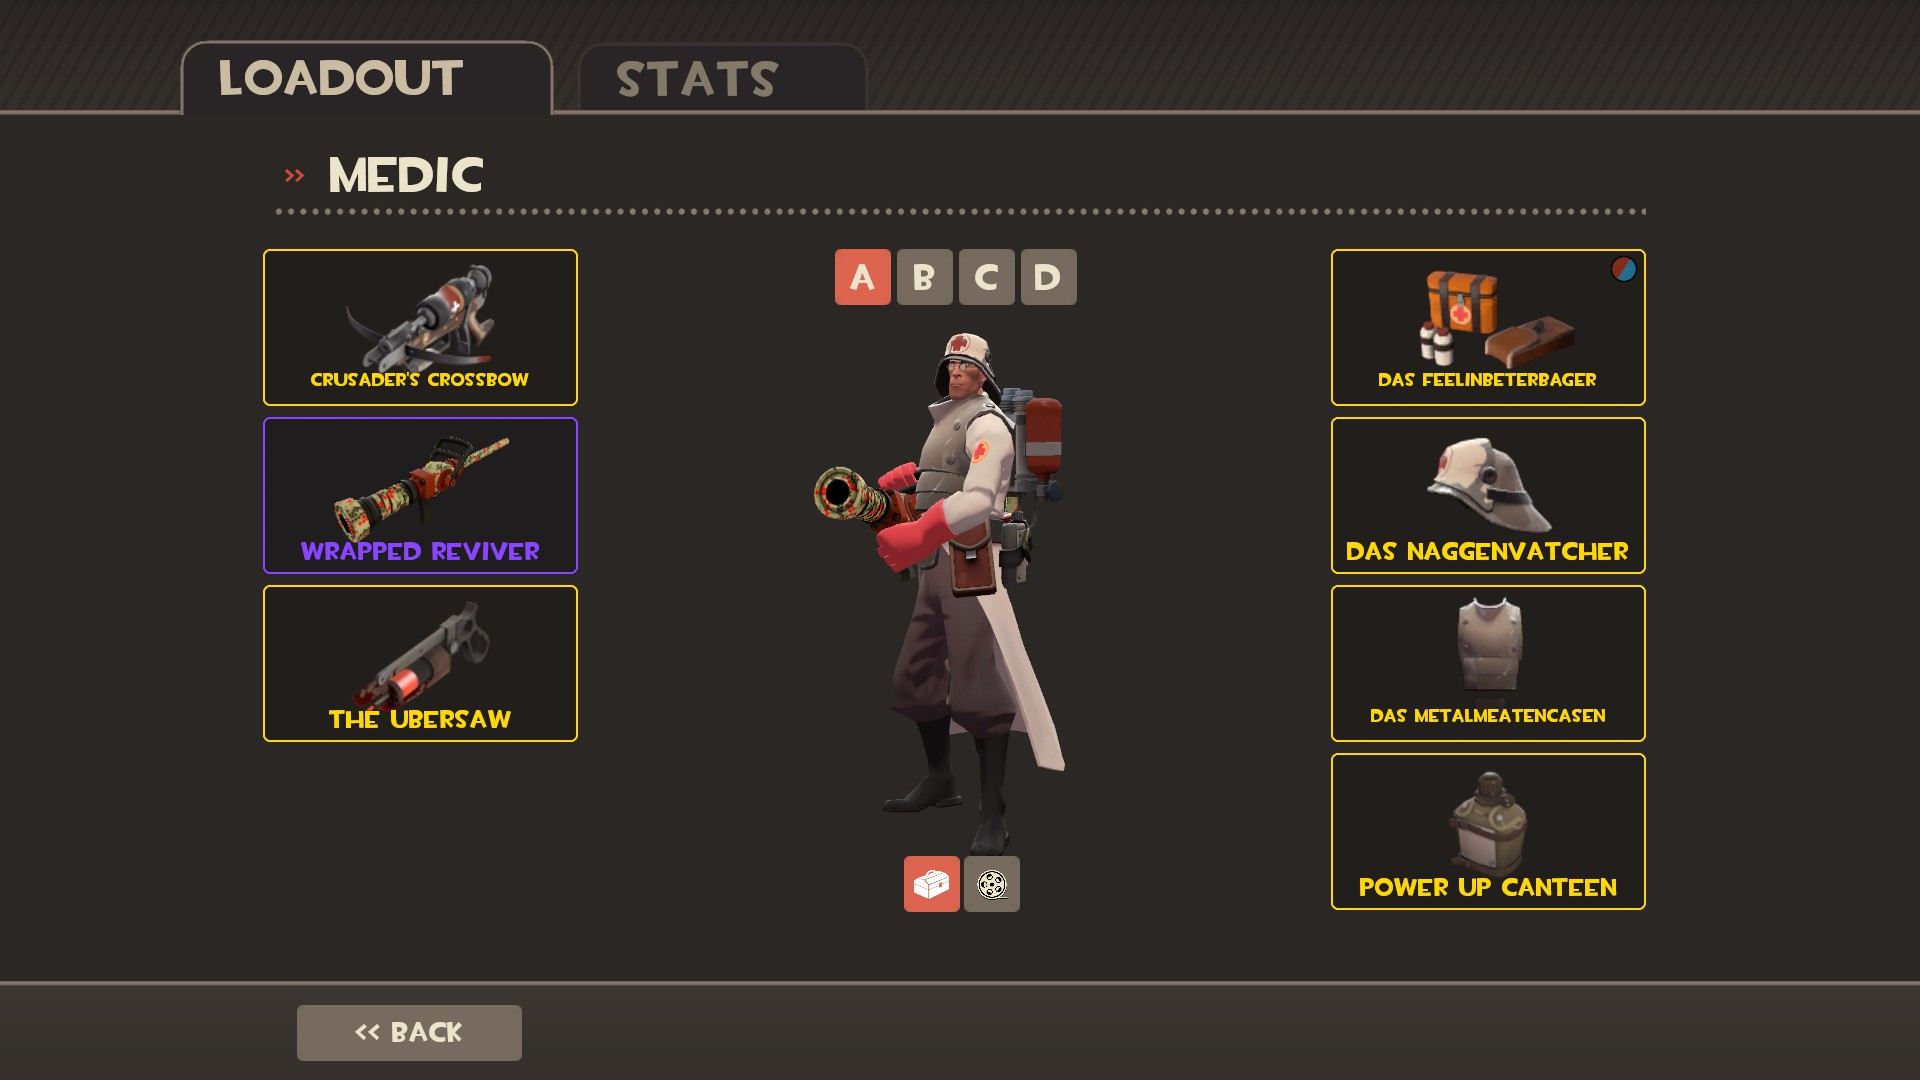 Tf2 soldier cosmetics quotes - Got Some Skins That Fit My Cosmetics Perfectly Some Soldier Stuff